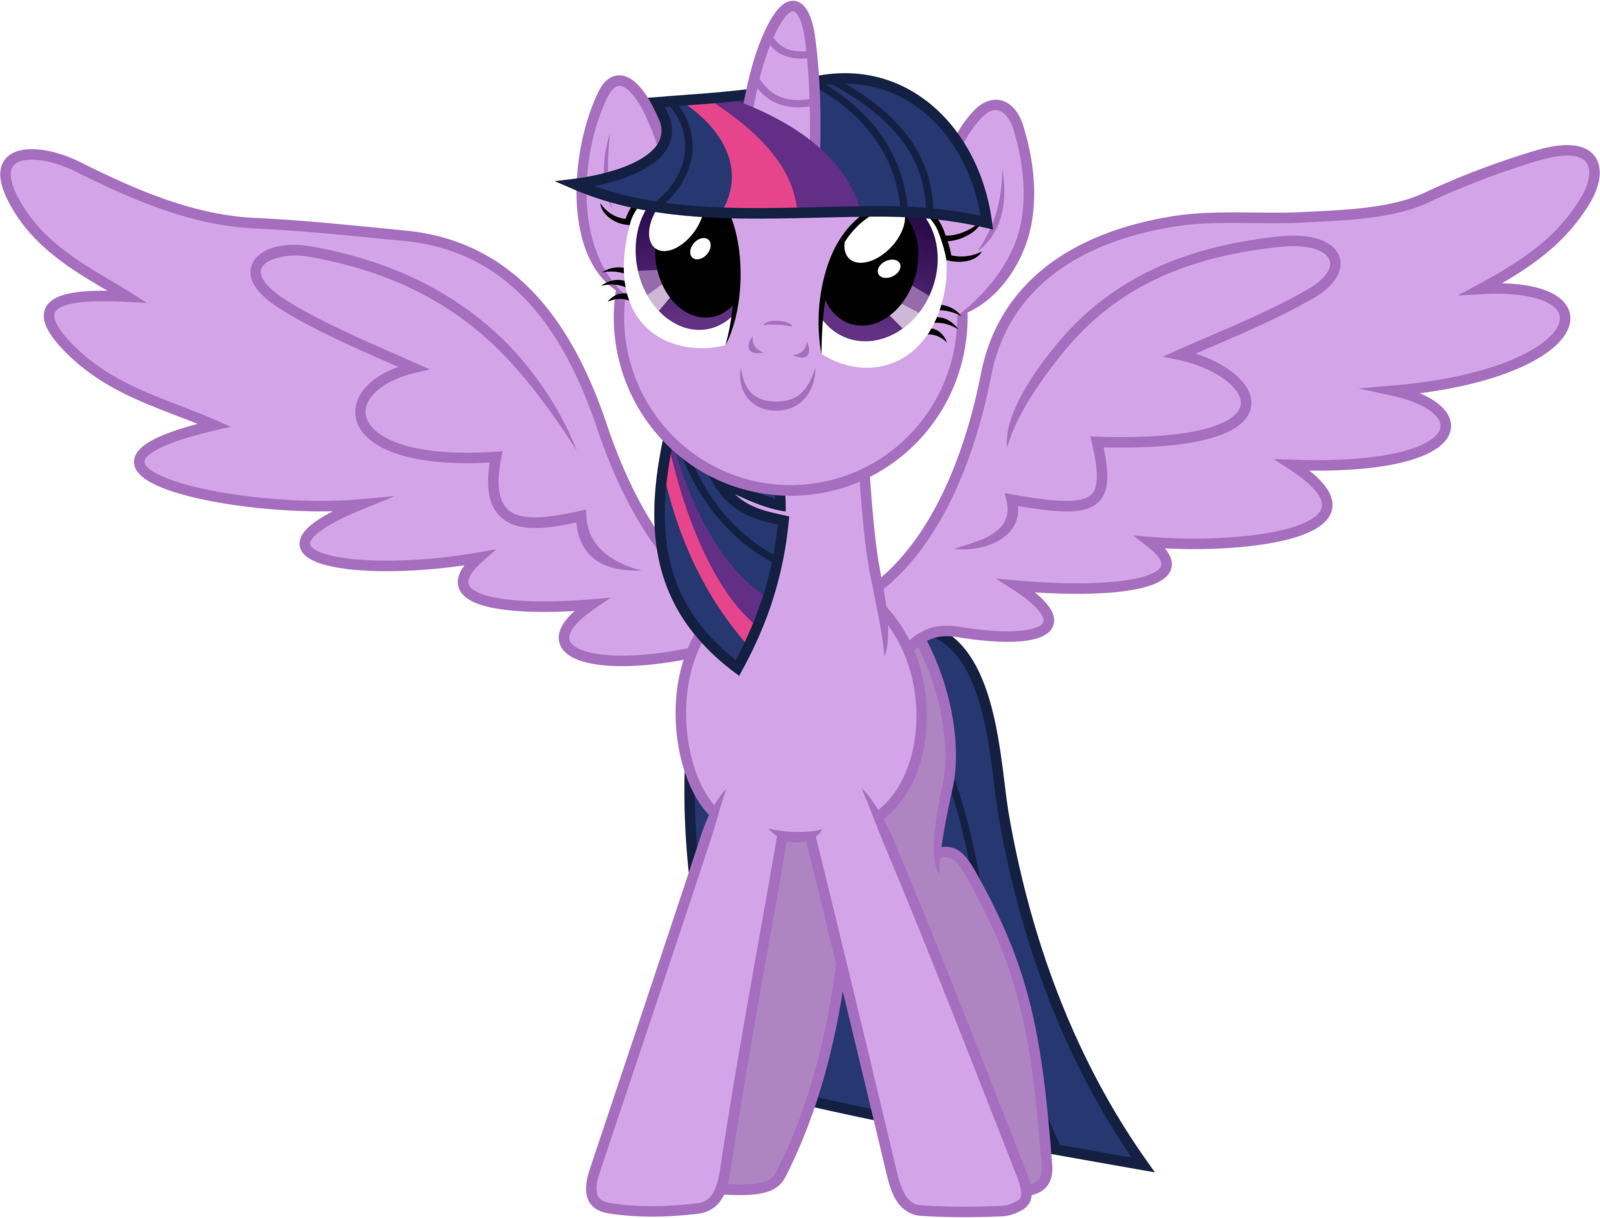 Twilight vector gumball. Sparkle transparent background png